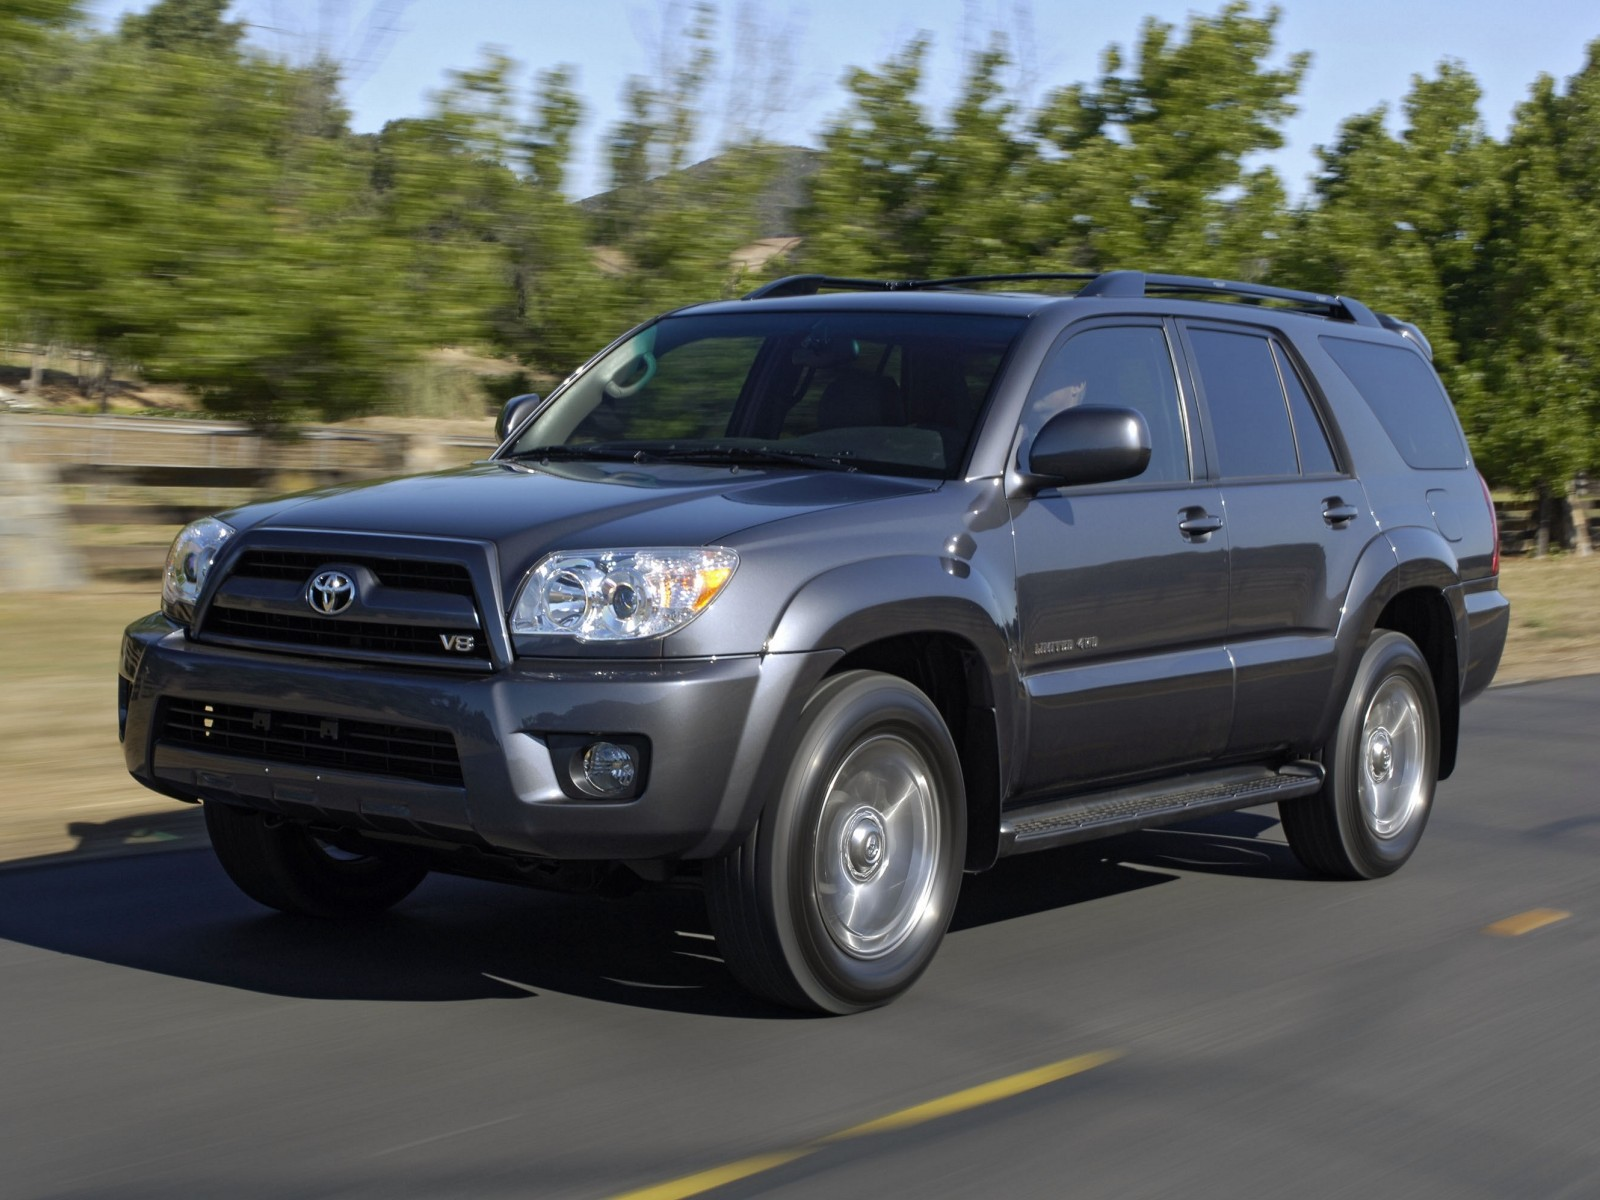 2009 toyota 4runner limited wallpapers pictures. Black Bedroom Furniture Sets. Home Design Ideas